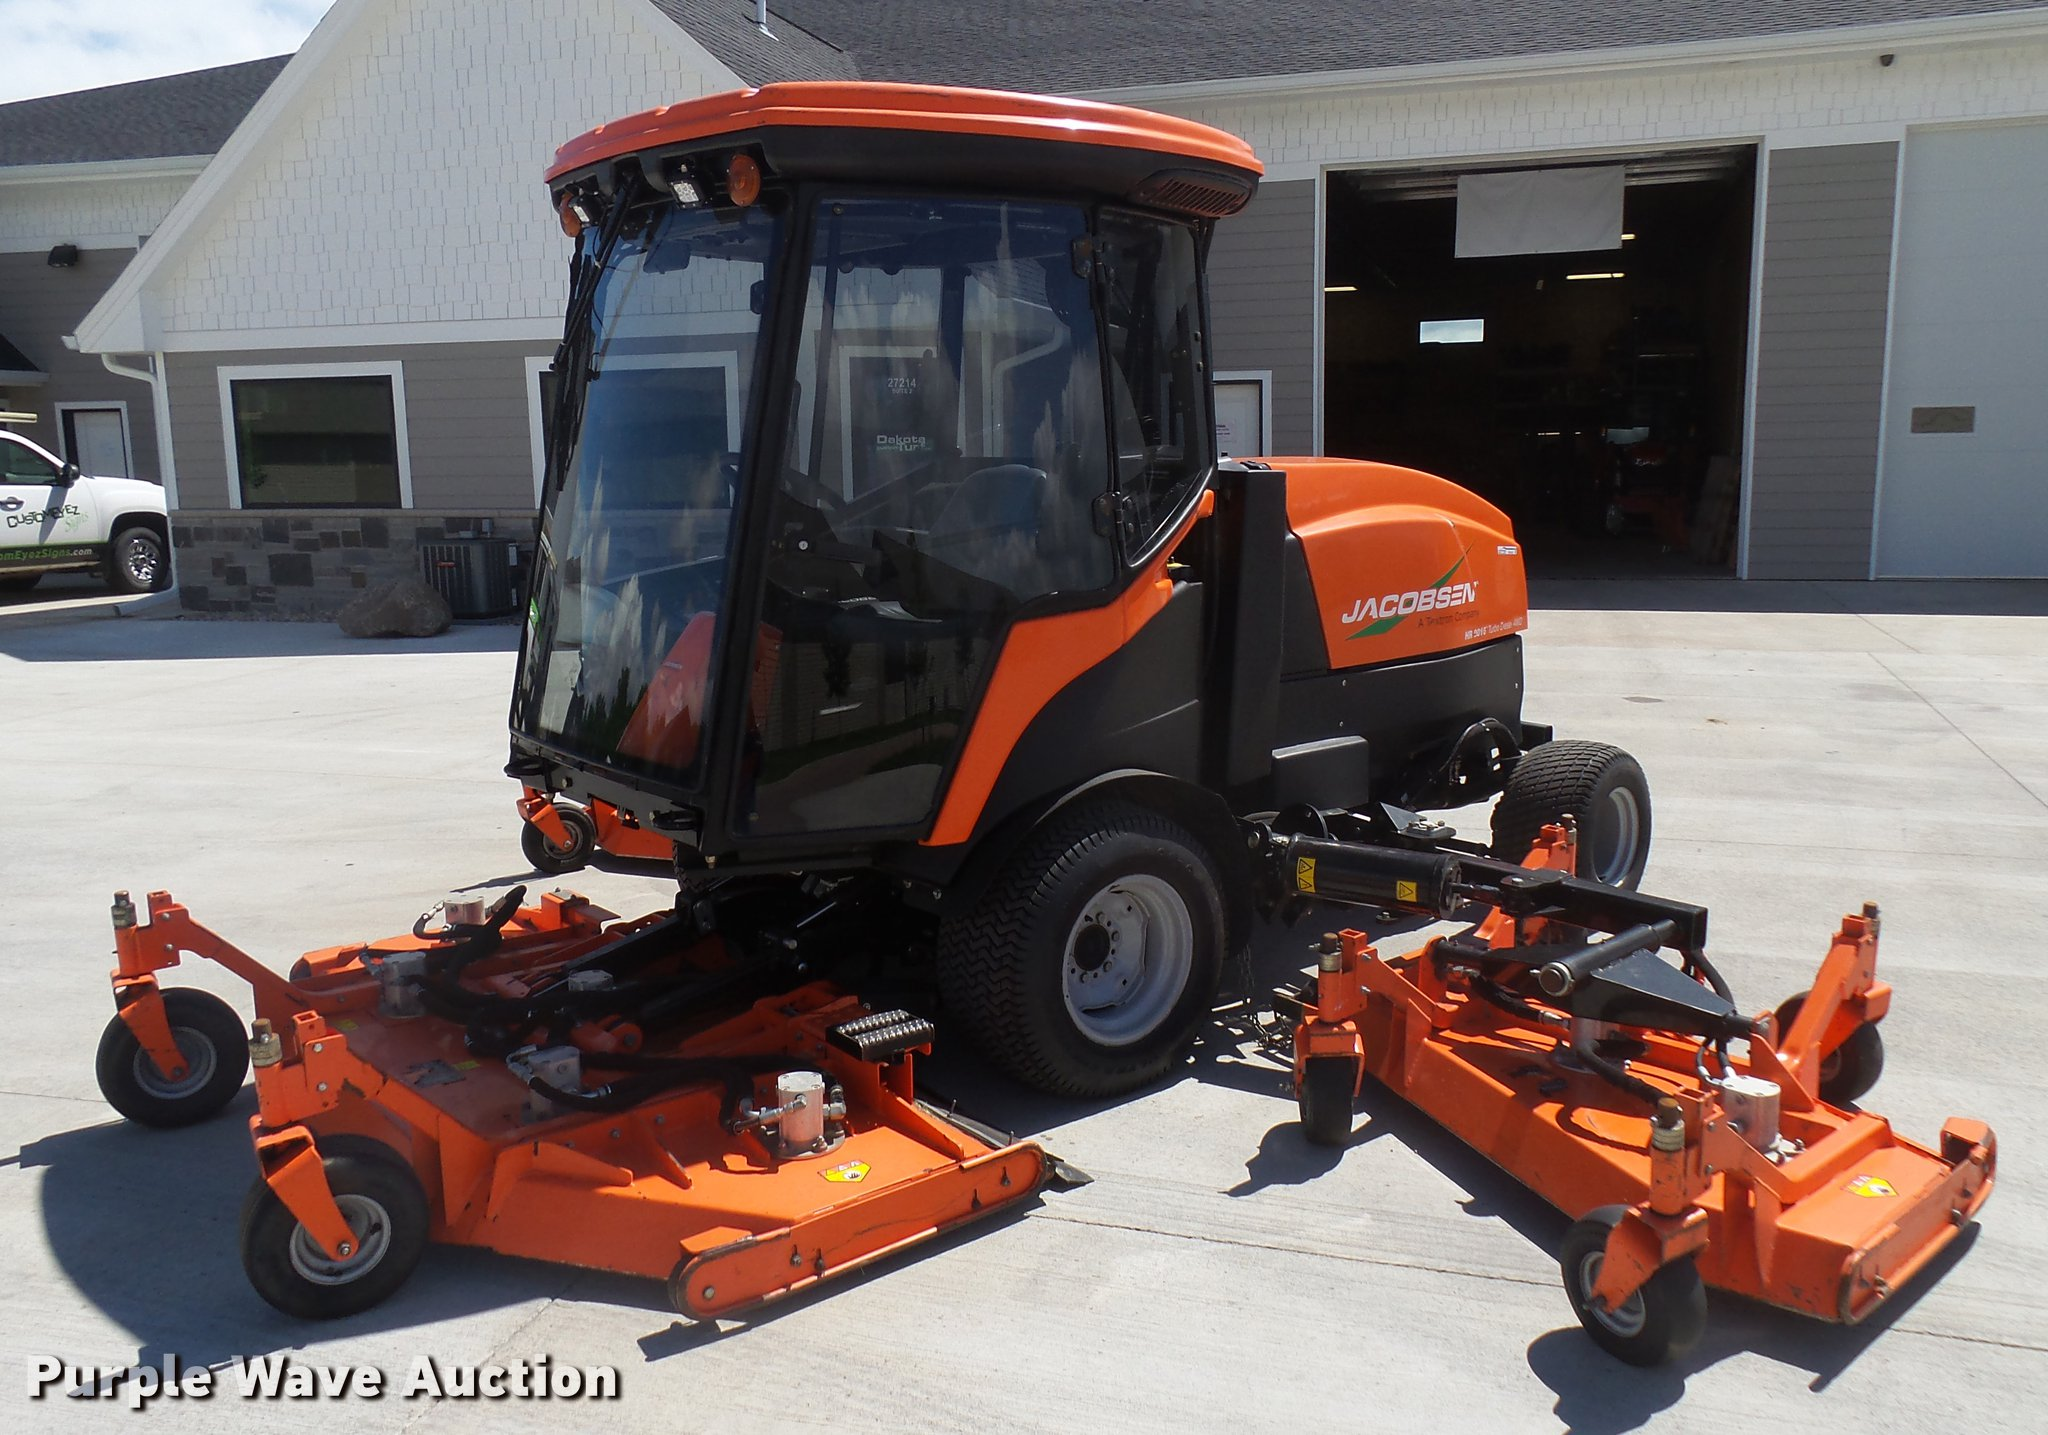 2014 Jacobsen HR9016 lawn mower | Item DX9122 | SOLD! July 1